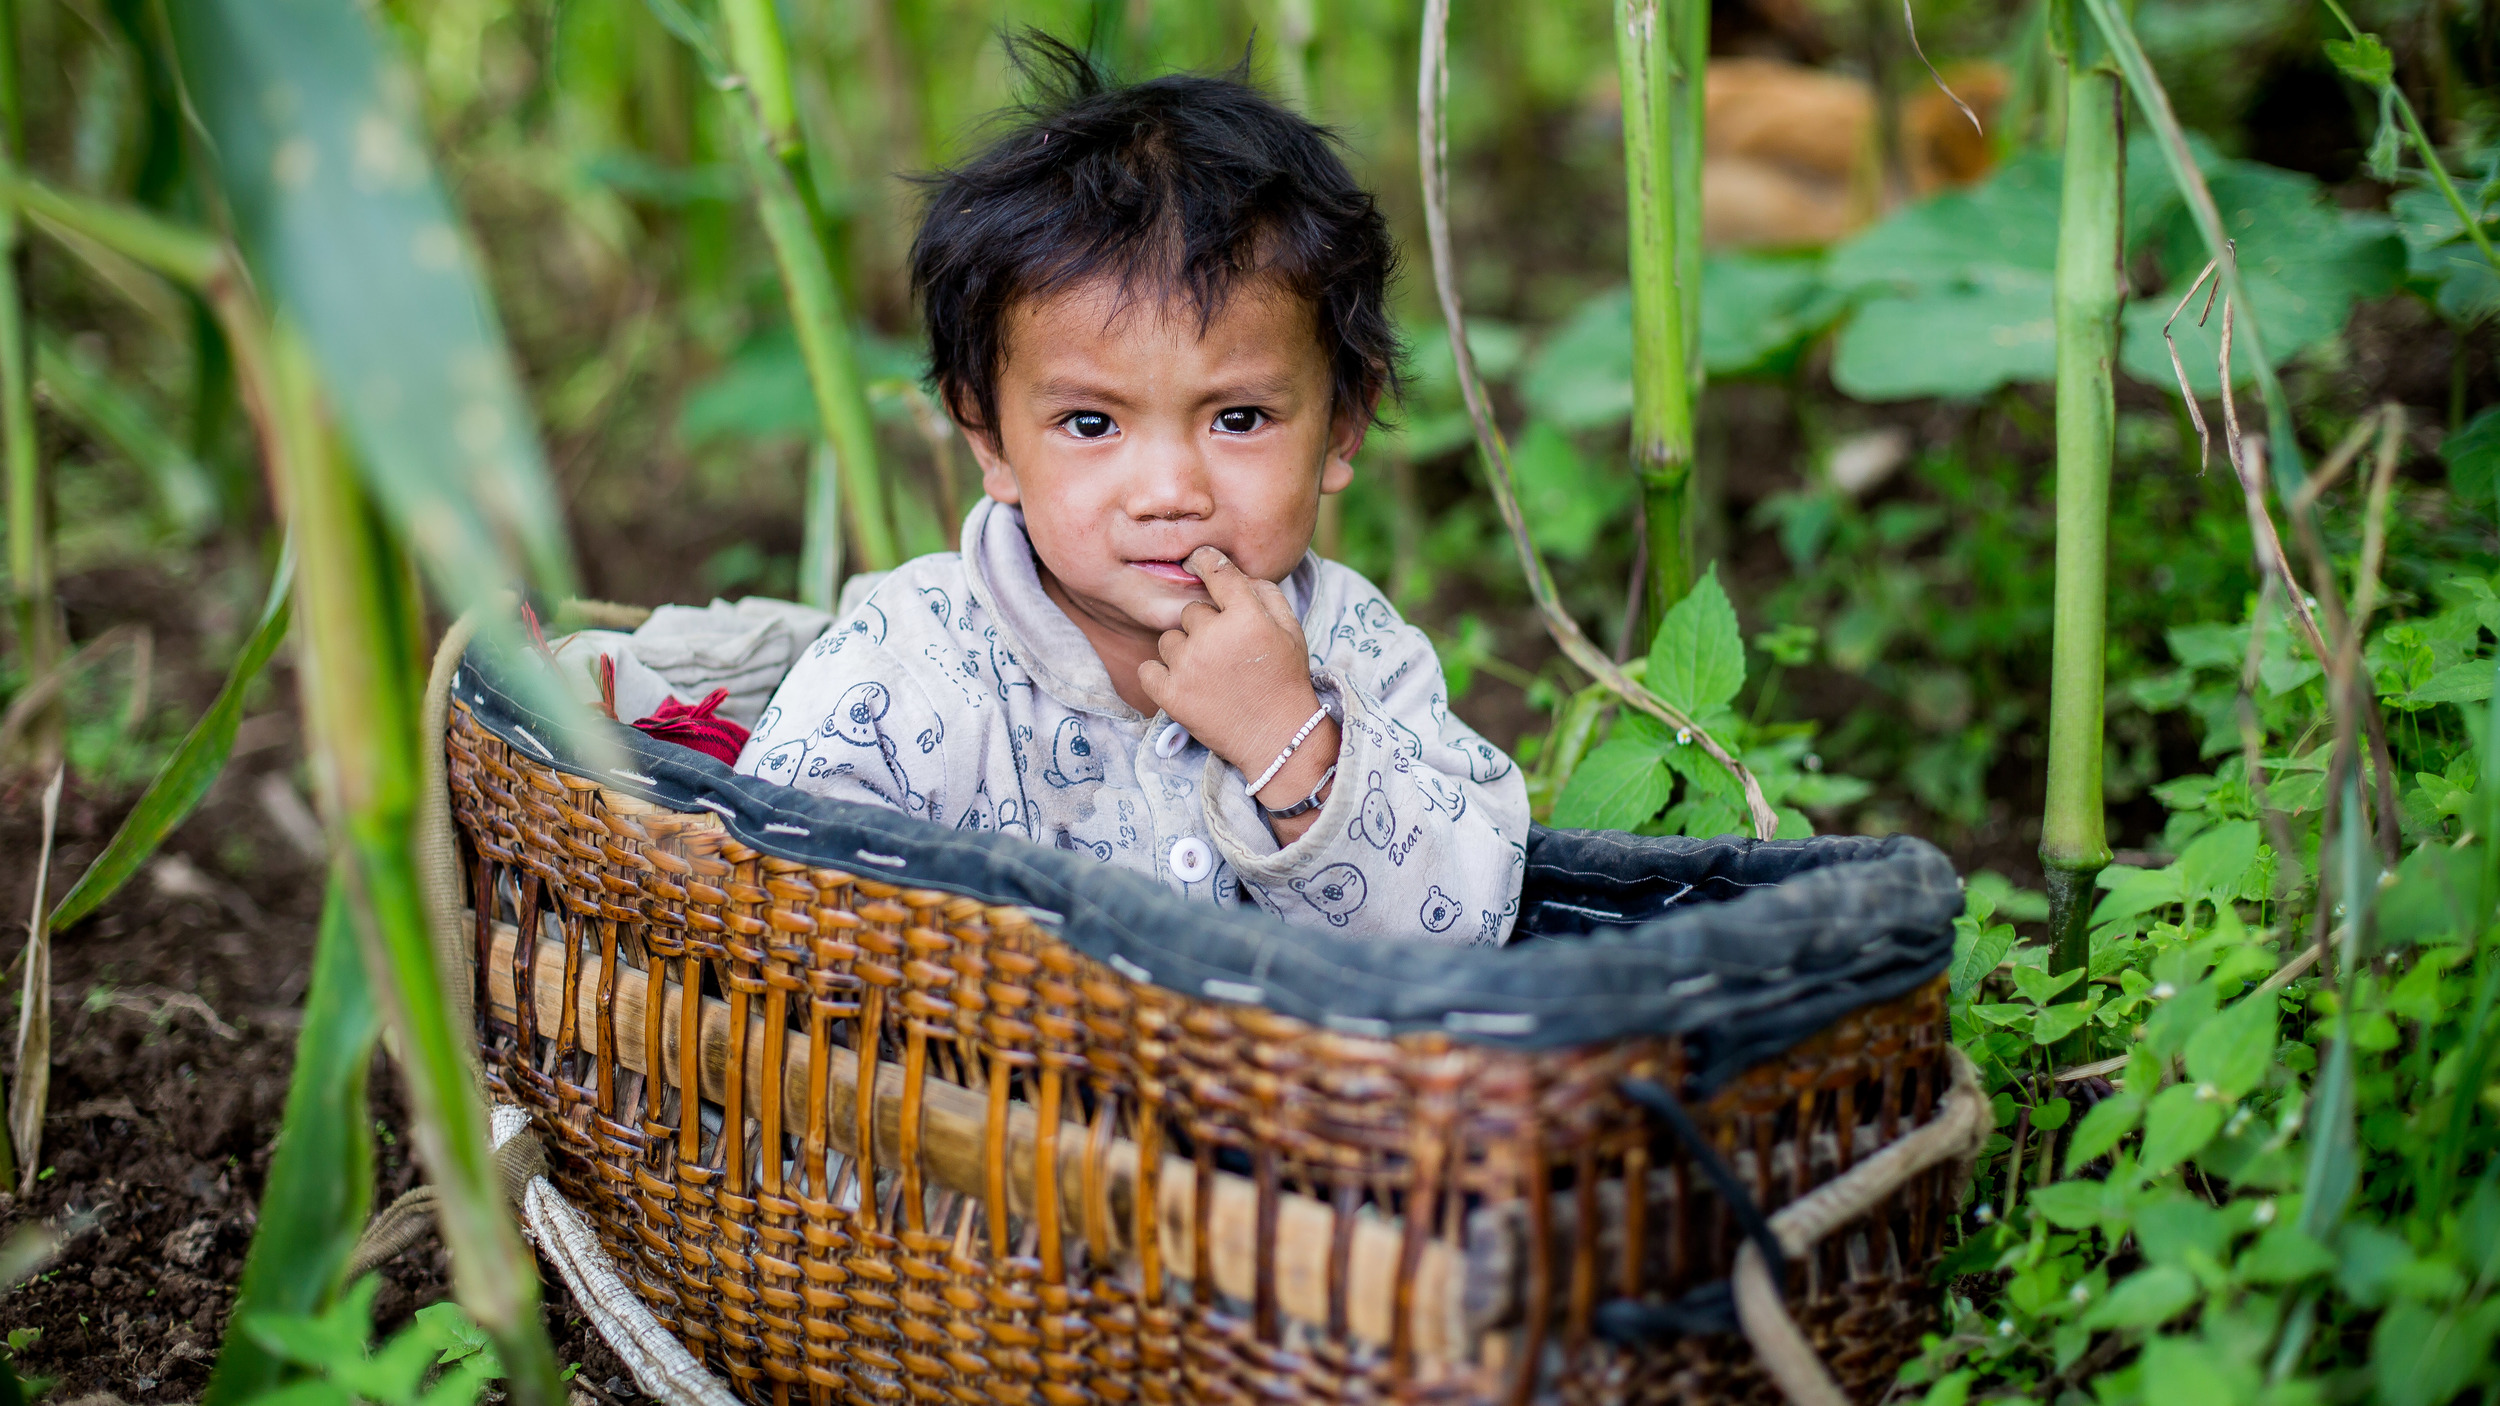 Baby in his basket beside his mother who is working in the field.